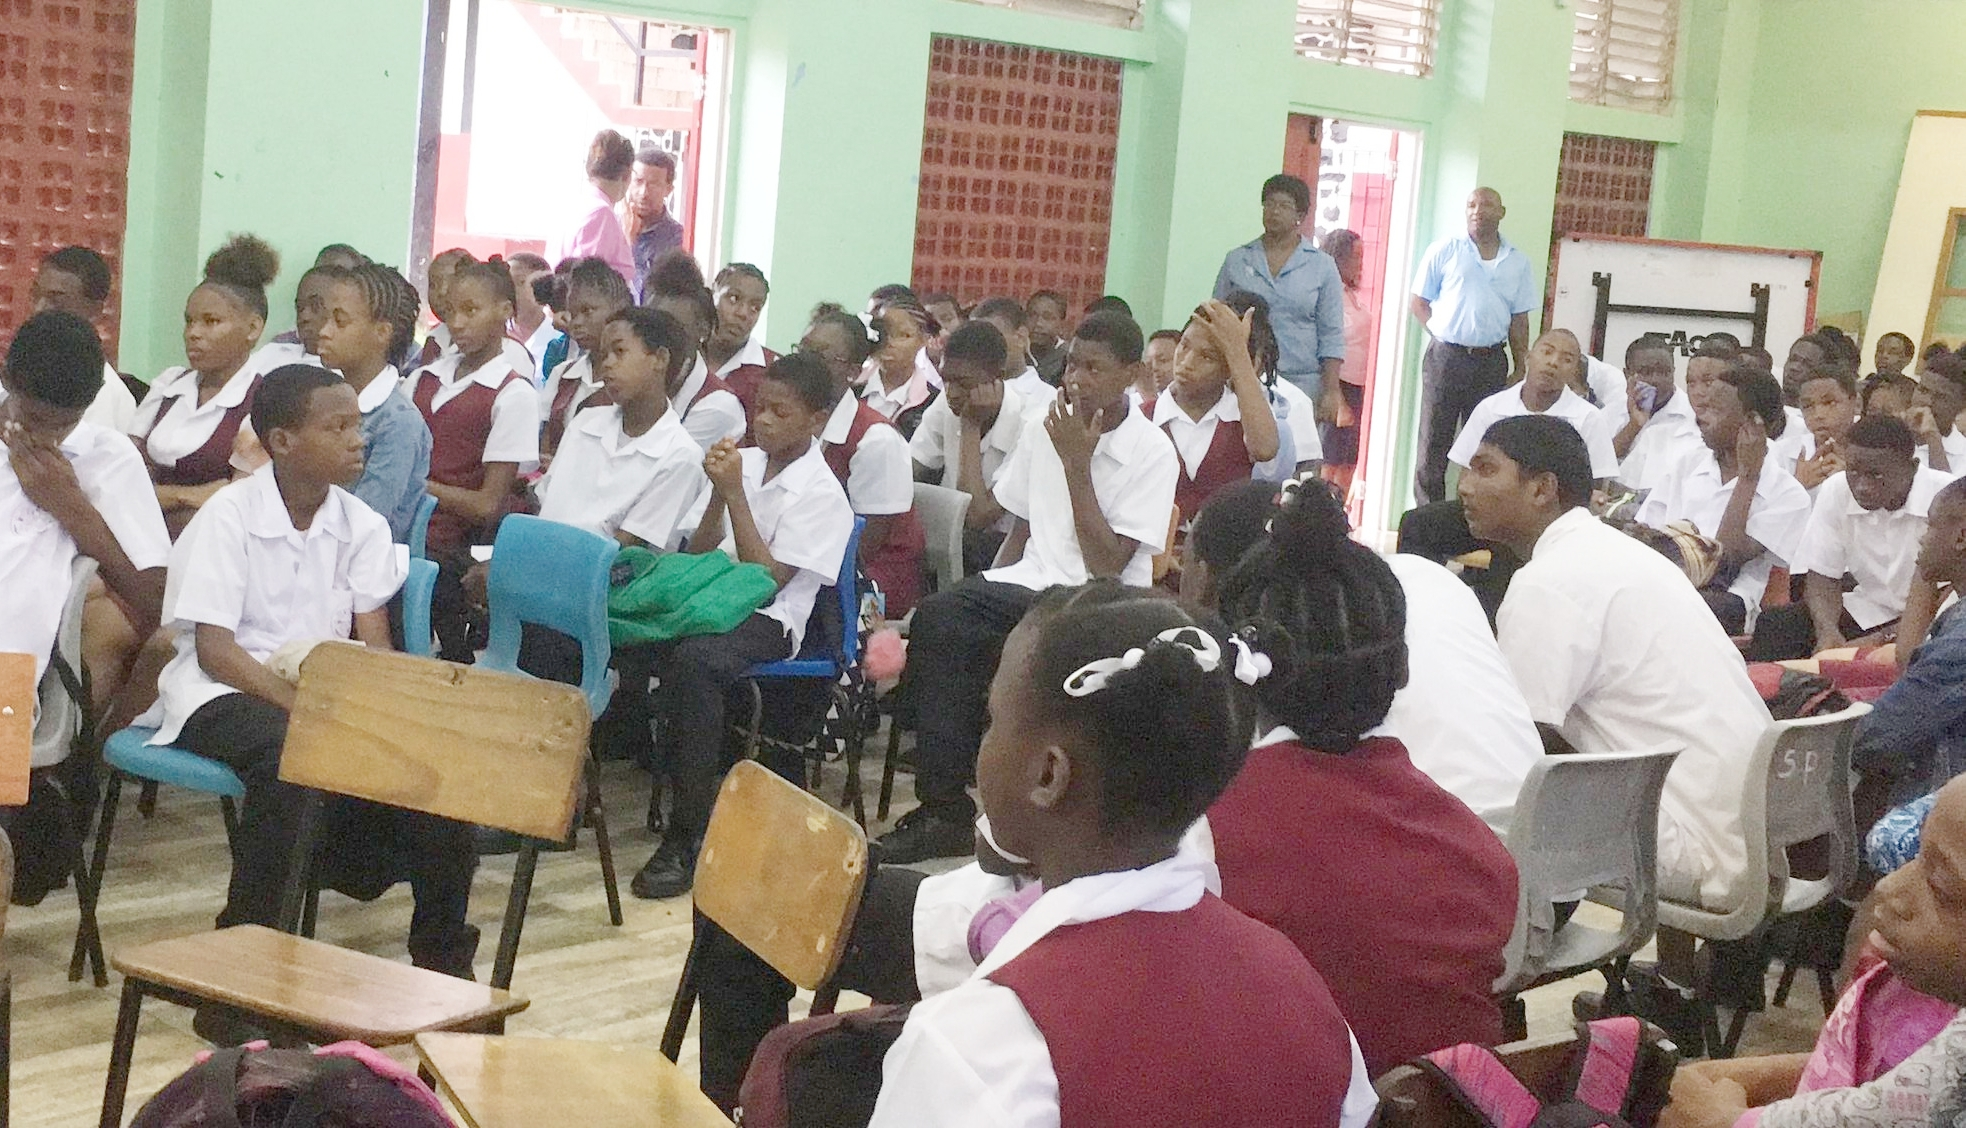 A view during a School session